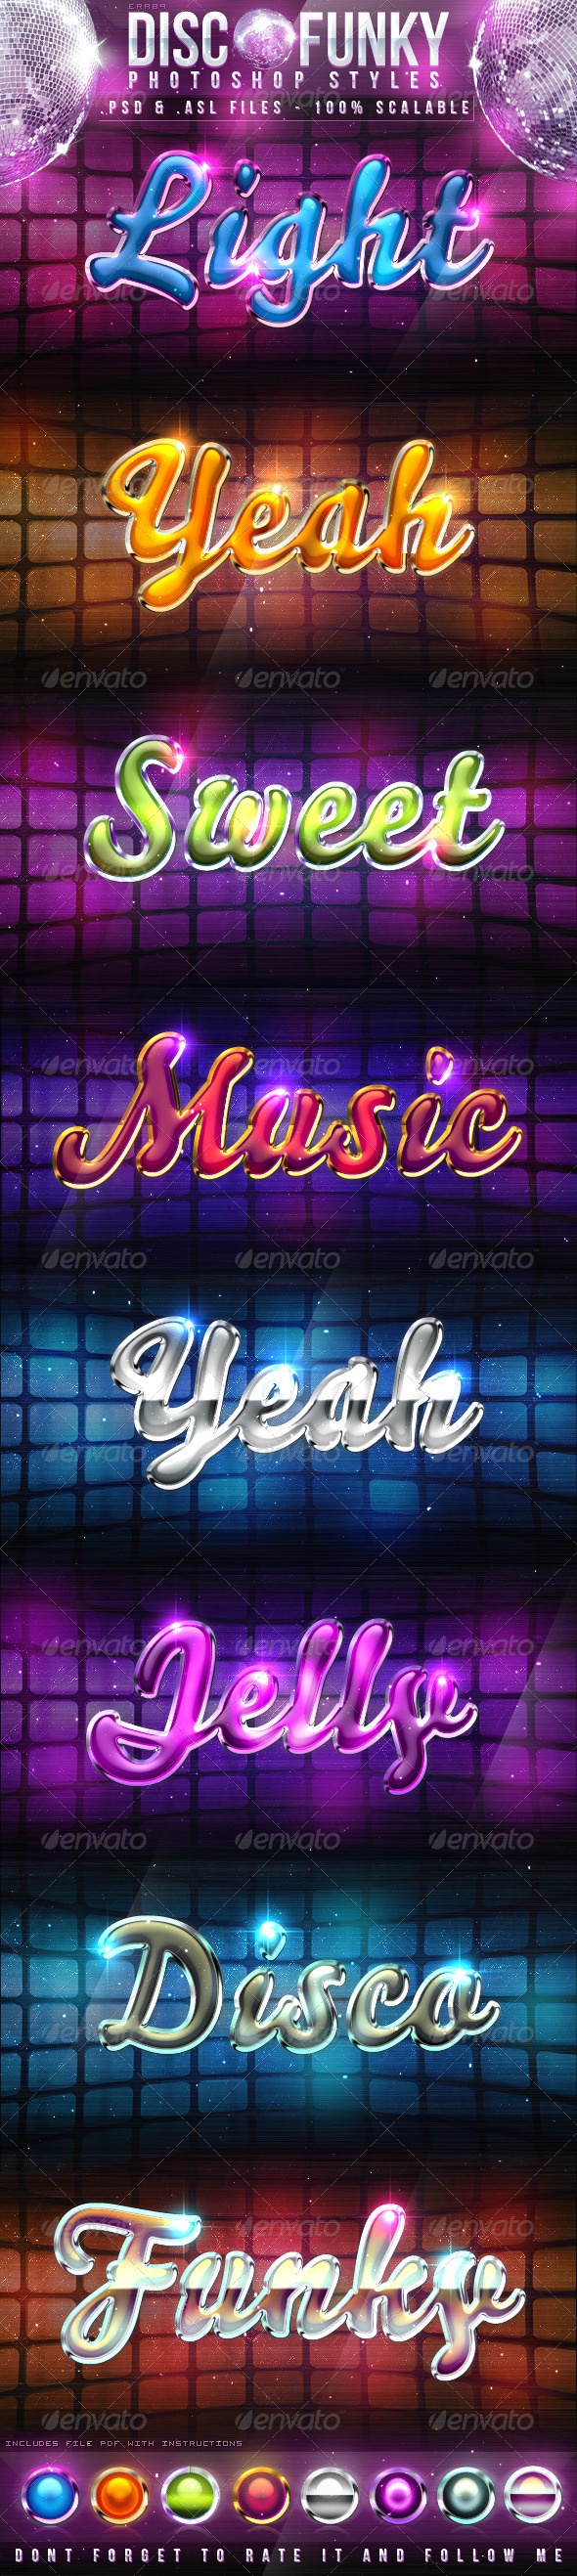 GraphicRiver Disco Funky Photoshop Styles 1650730